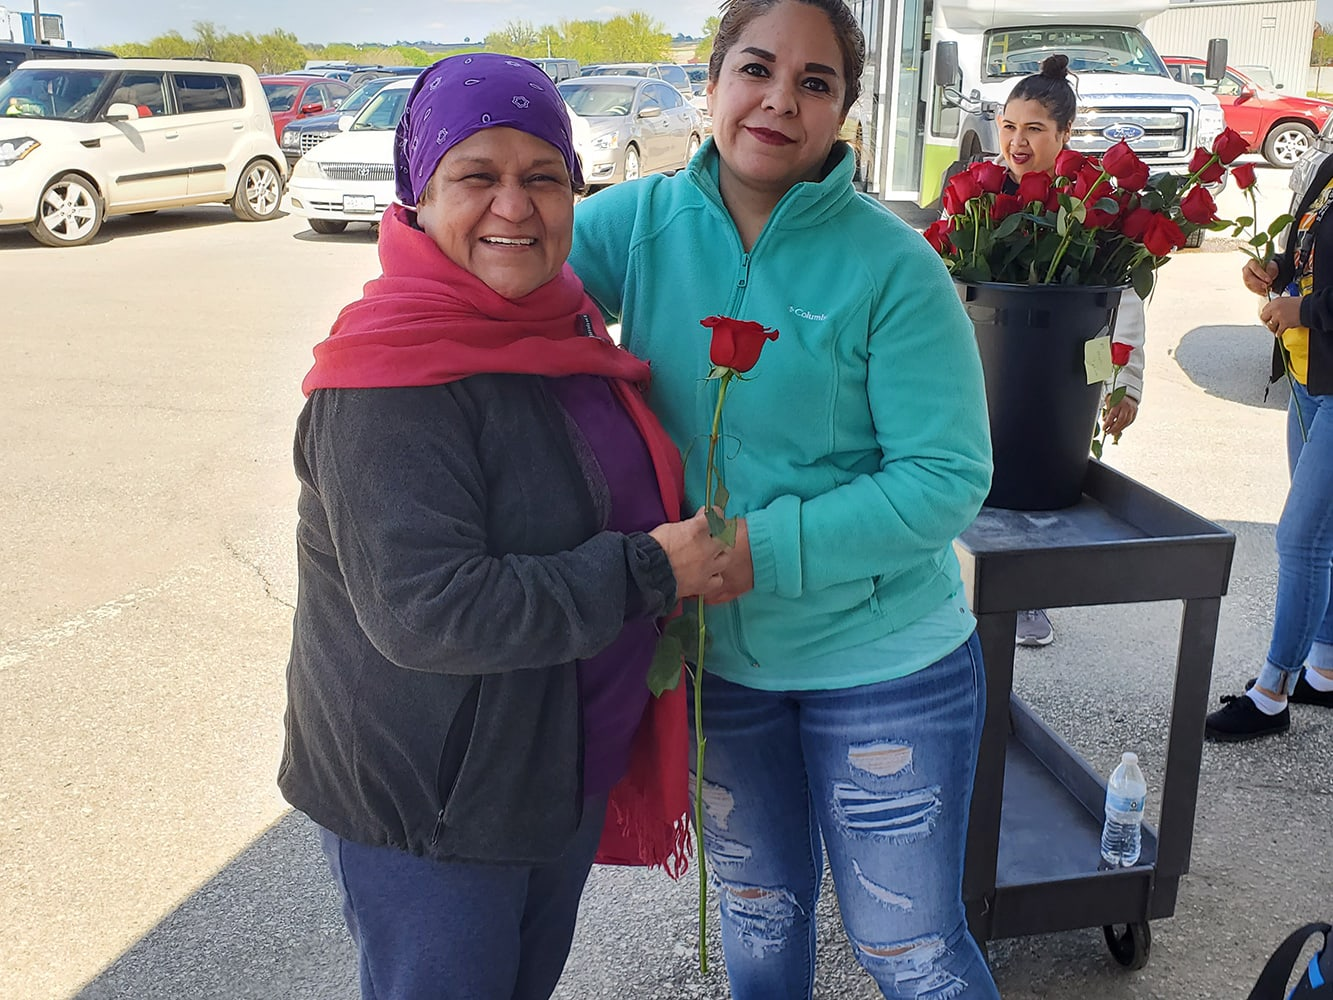 Harlan employees celebrate Mother's Day with roses